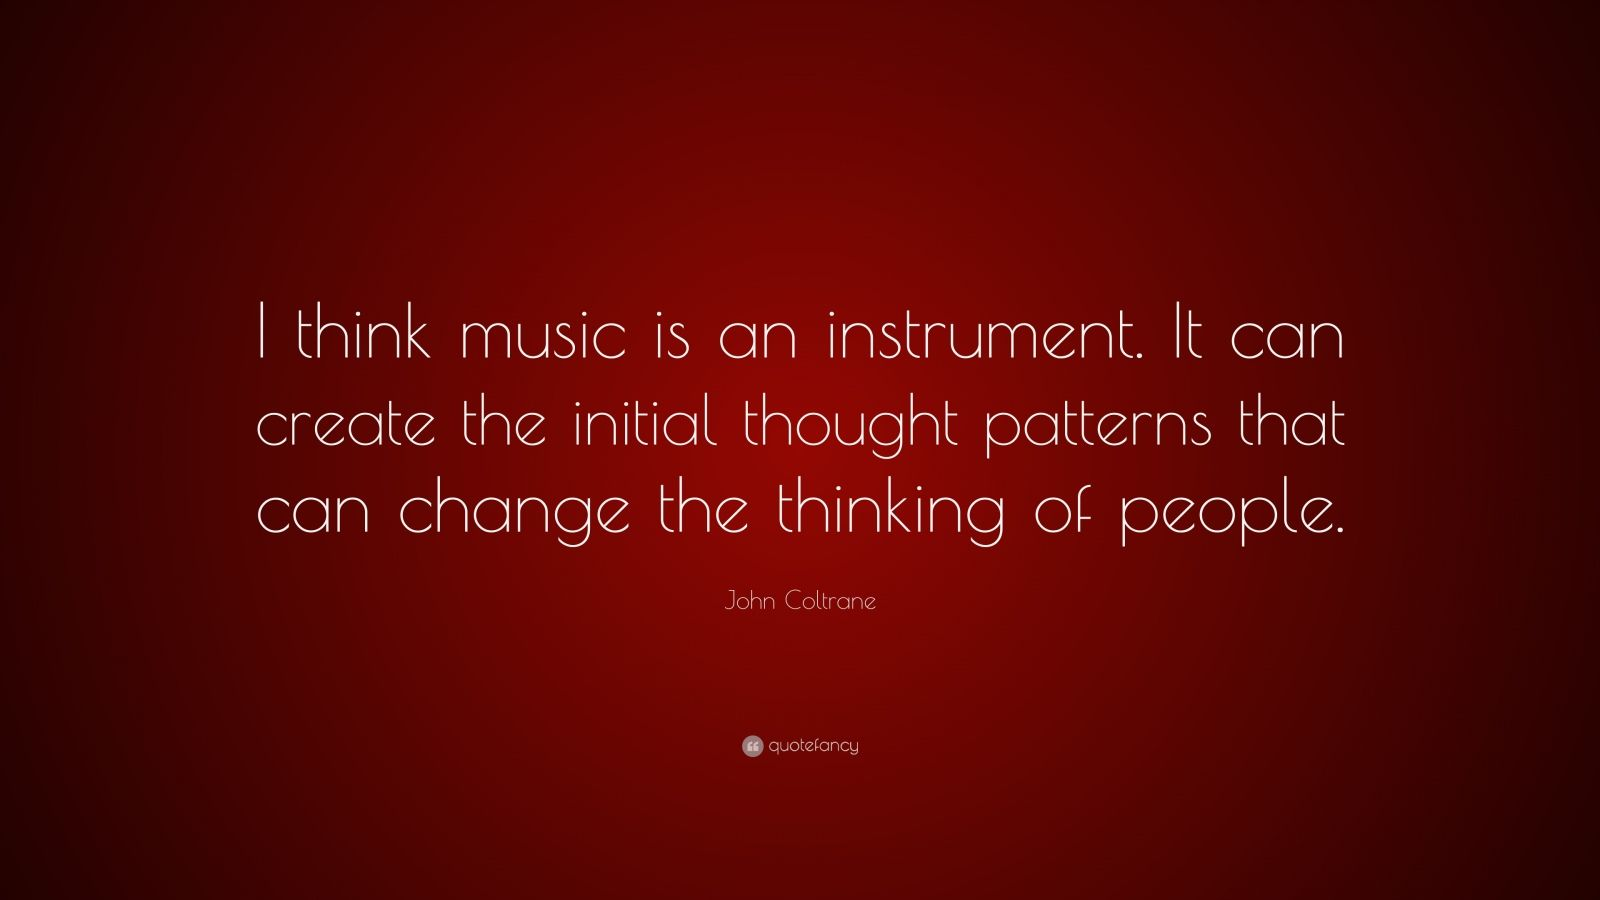 """John Coltrane Quote: """"I think music is an instrument. It can create the initial thought patterns that can change the thinking of people."""""""